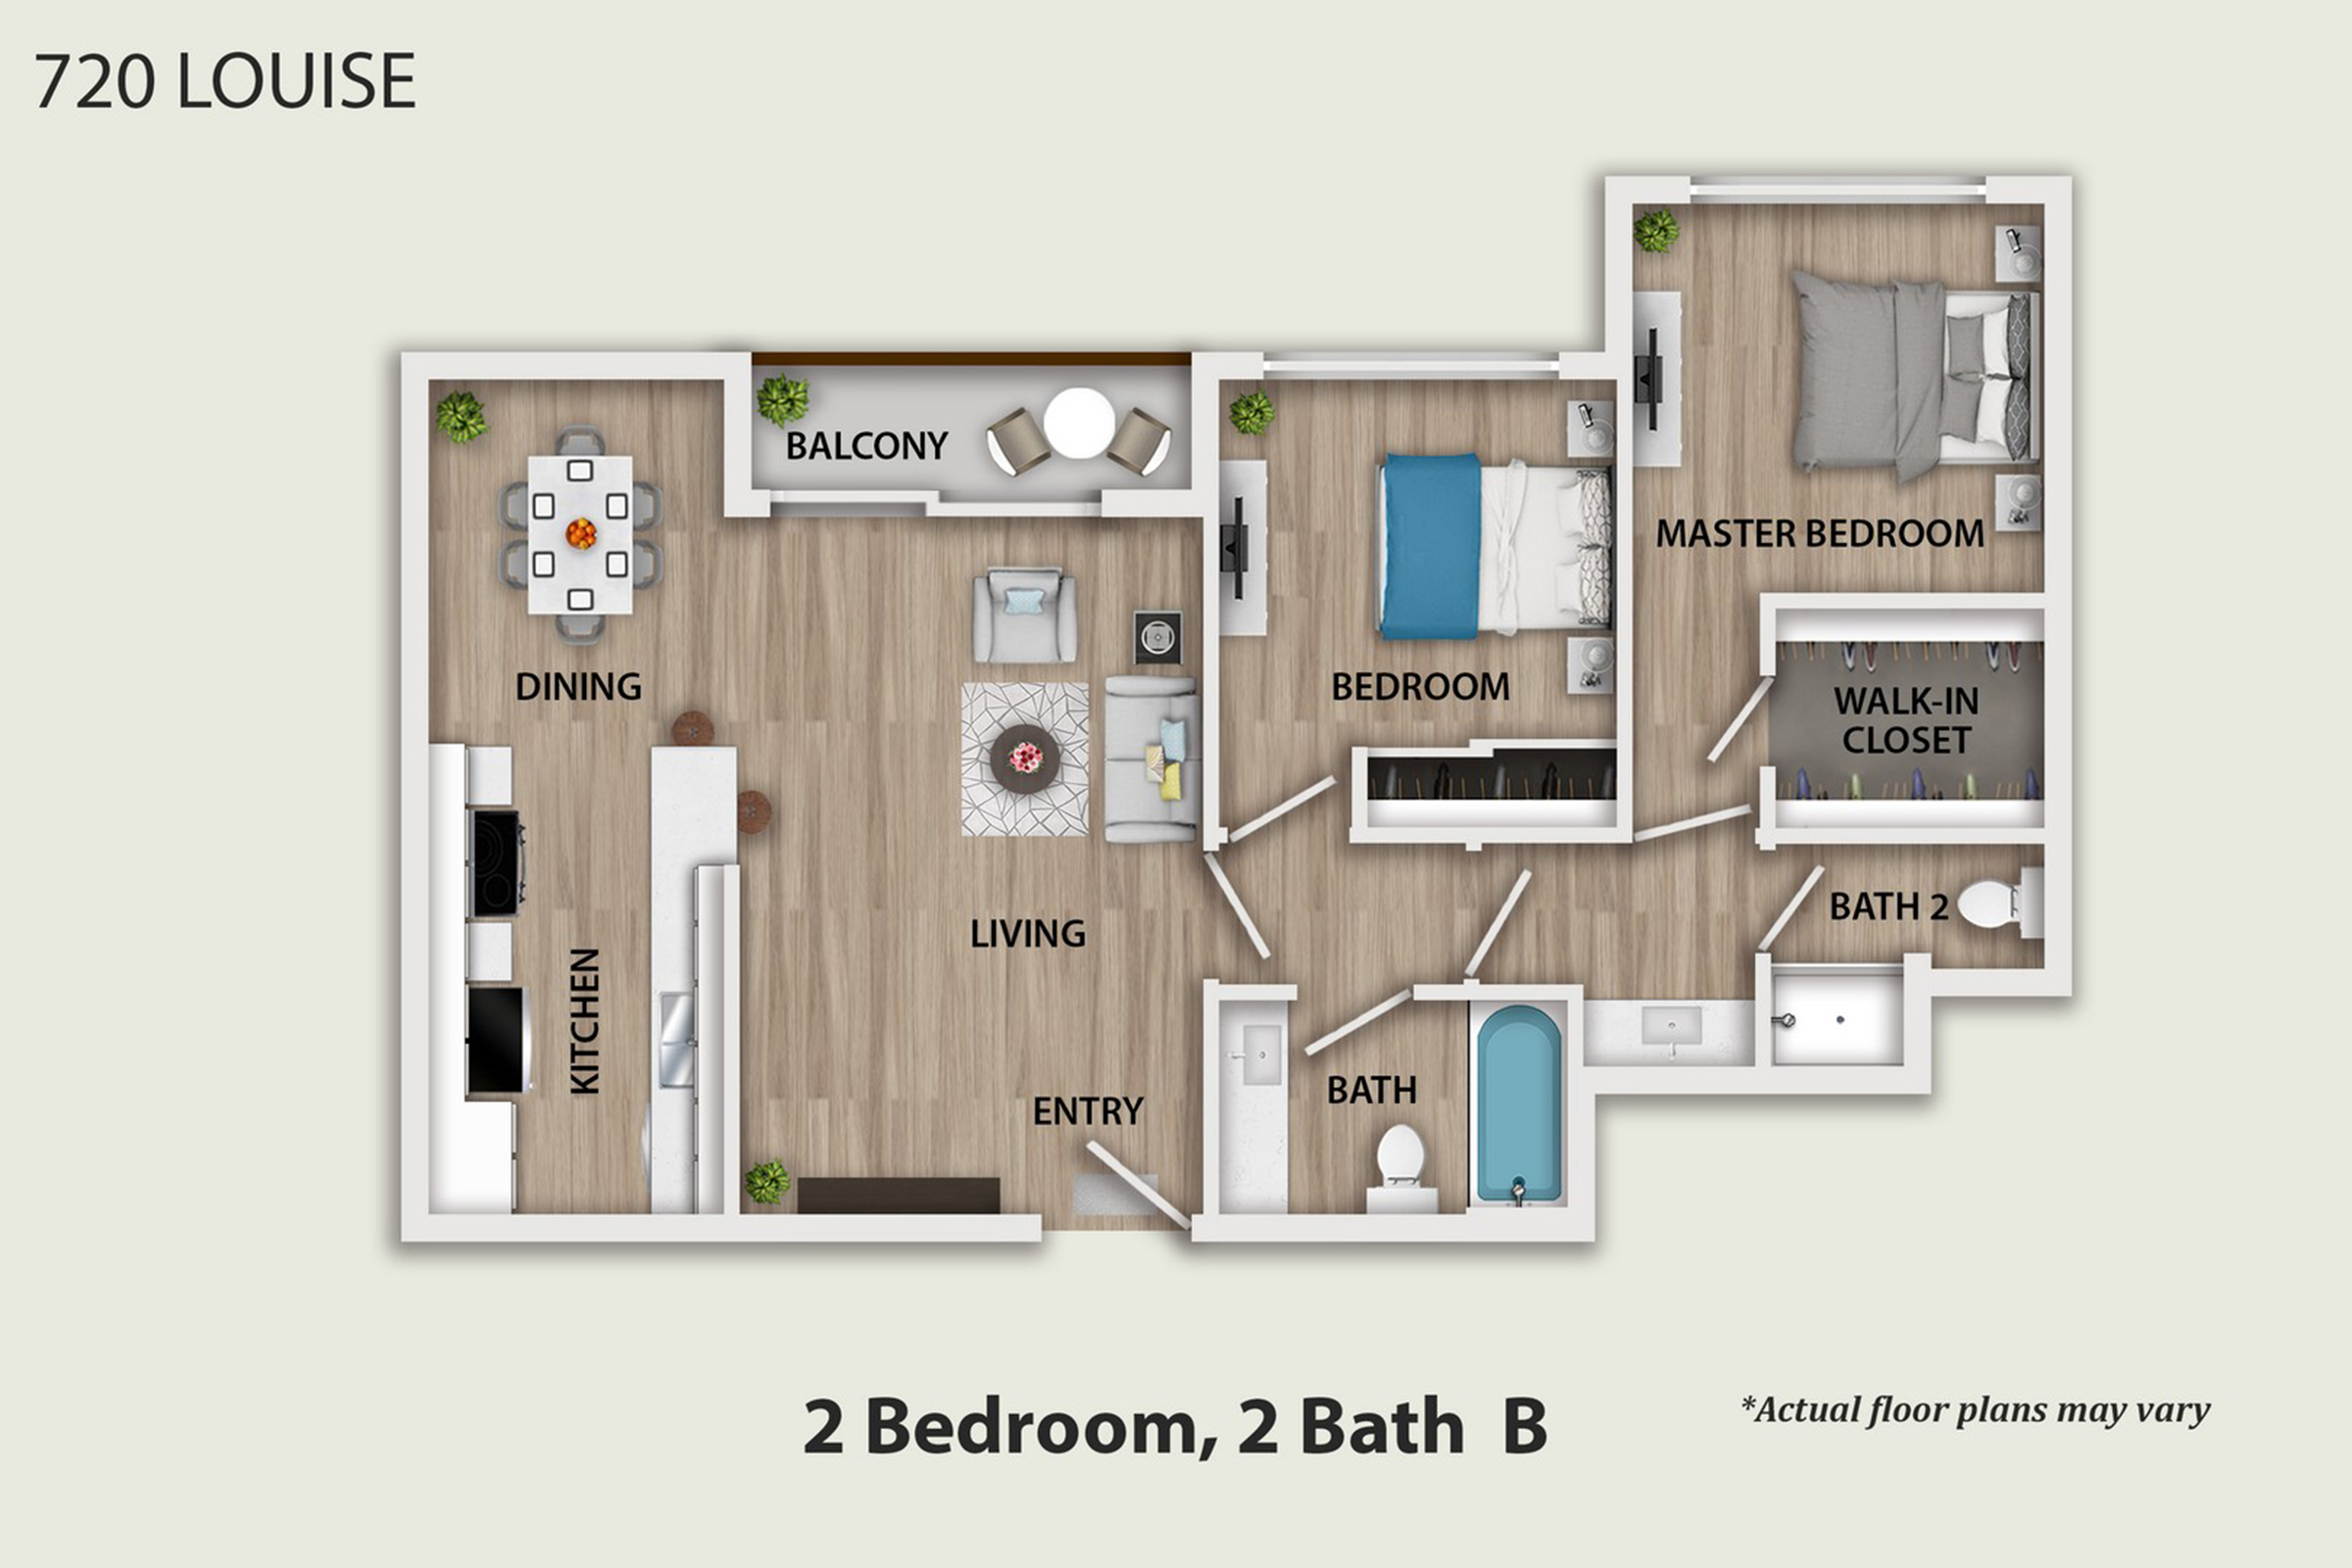 Spacious Two Bedroom Apartments in Glendale CA